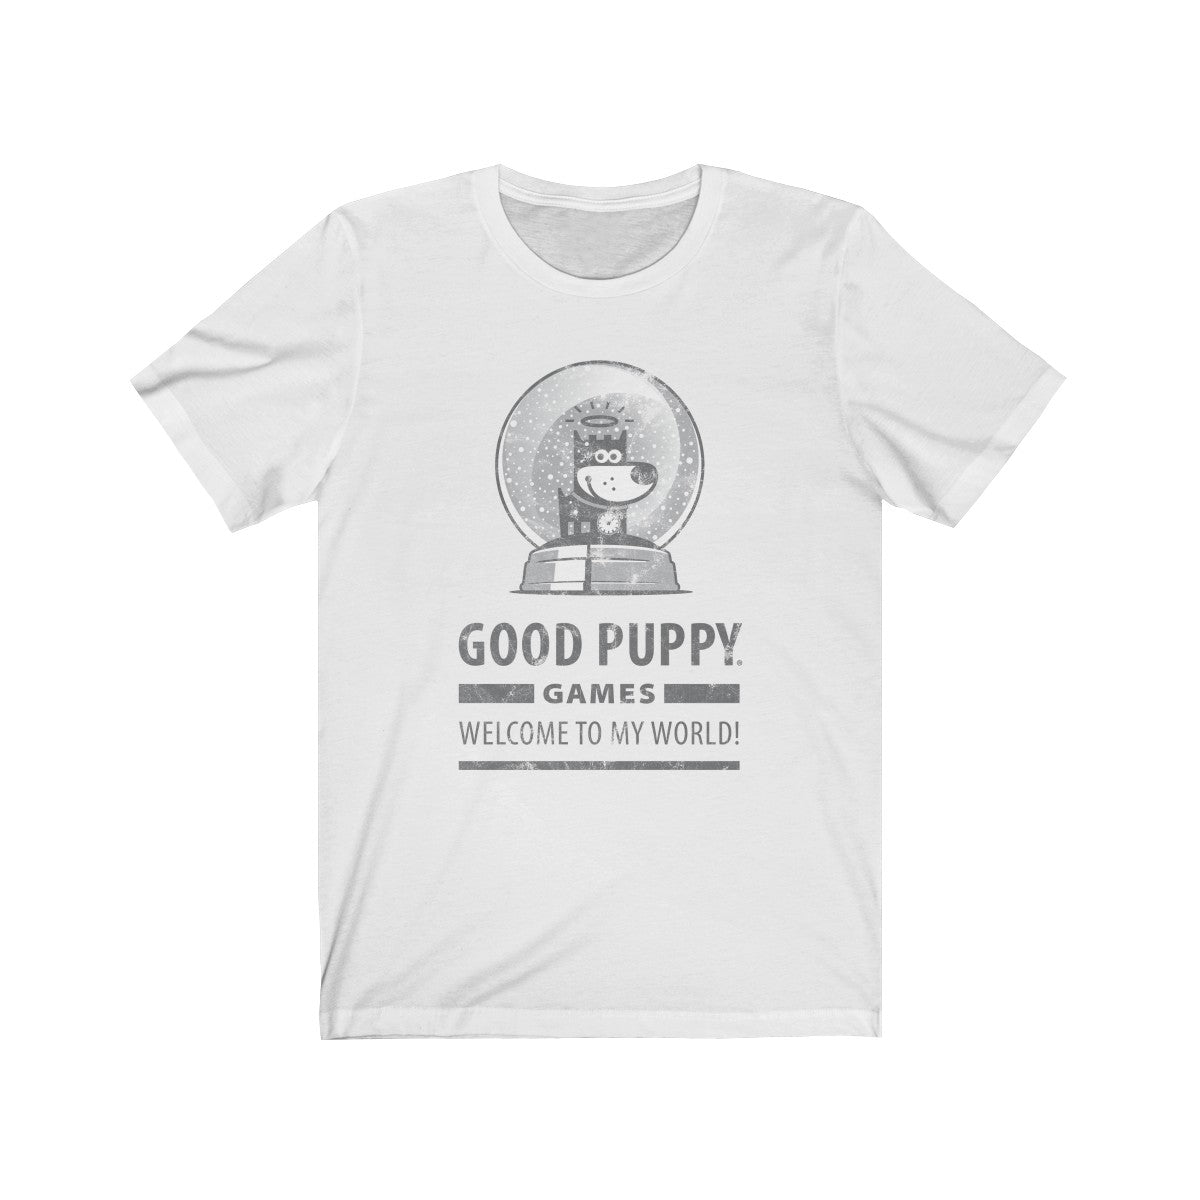 GOOD PUPPY VINTAGE . Games II . Unisex Jersey Short Sleeve Tee